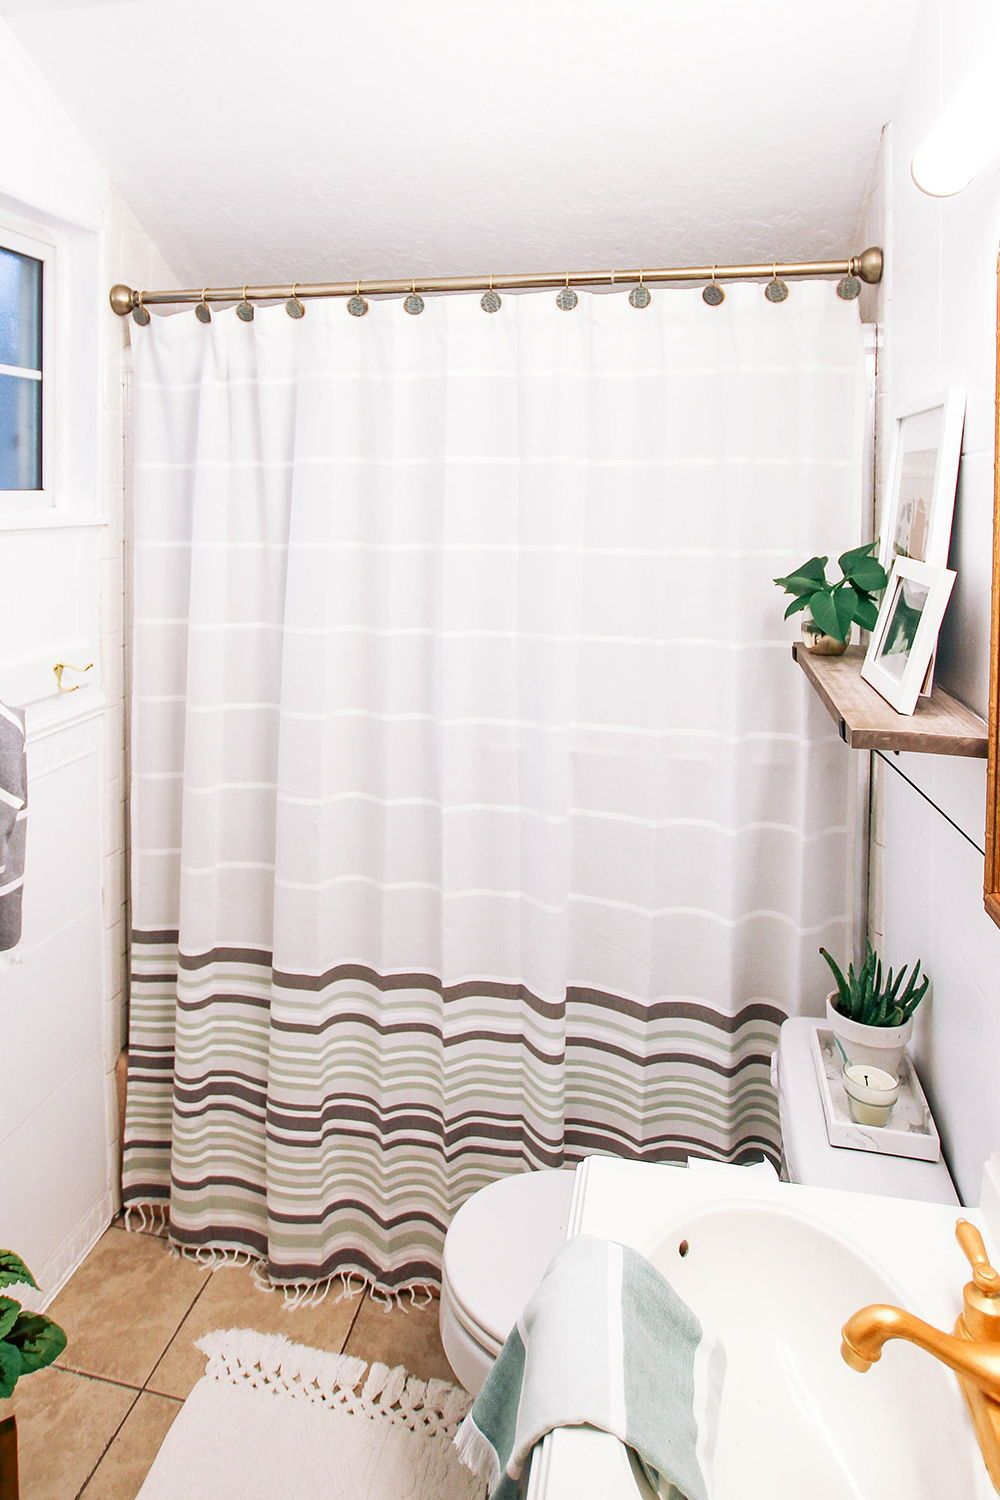 Home In 2020 Modern Shower Curtains Striped Shower Curtains